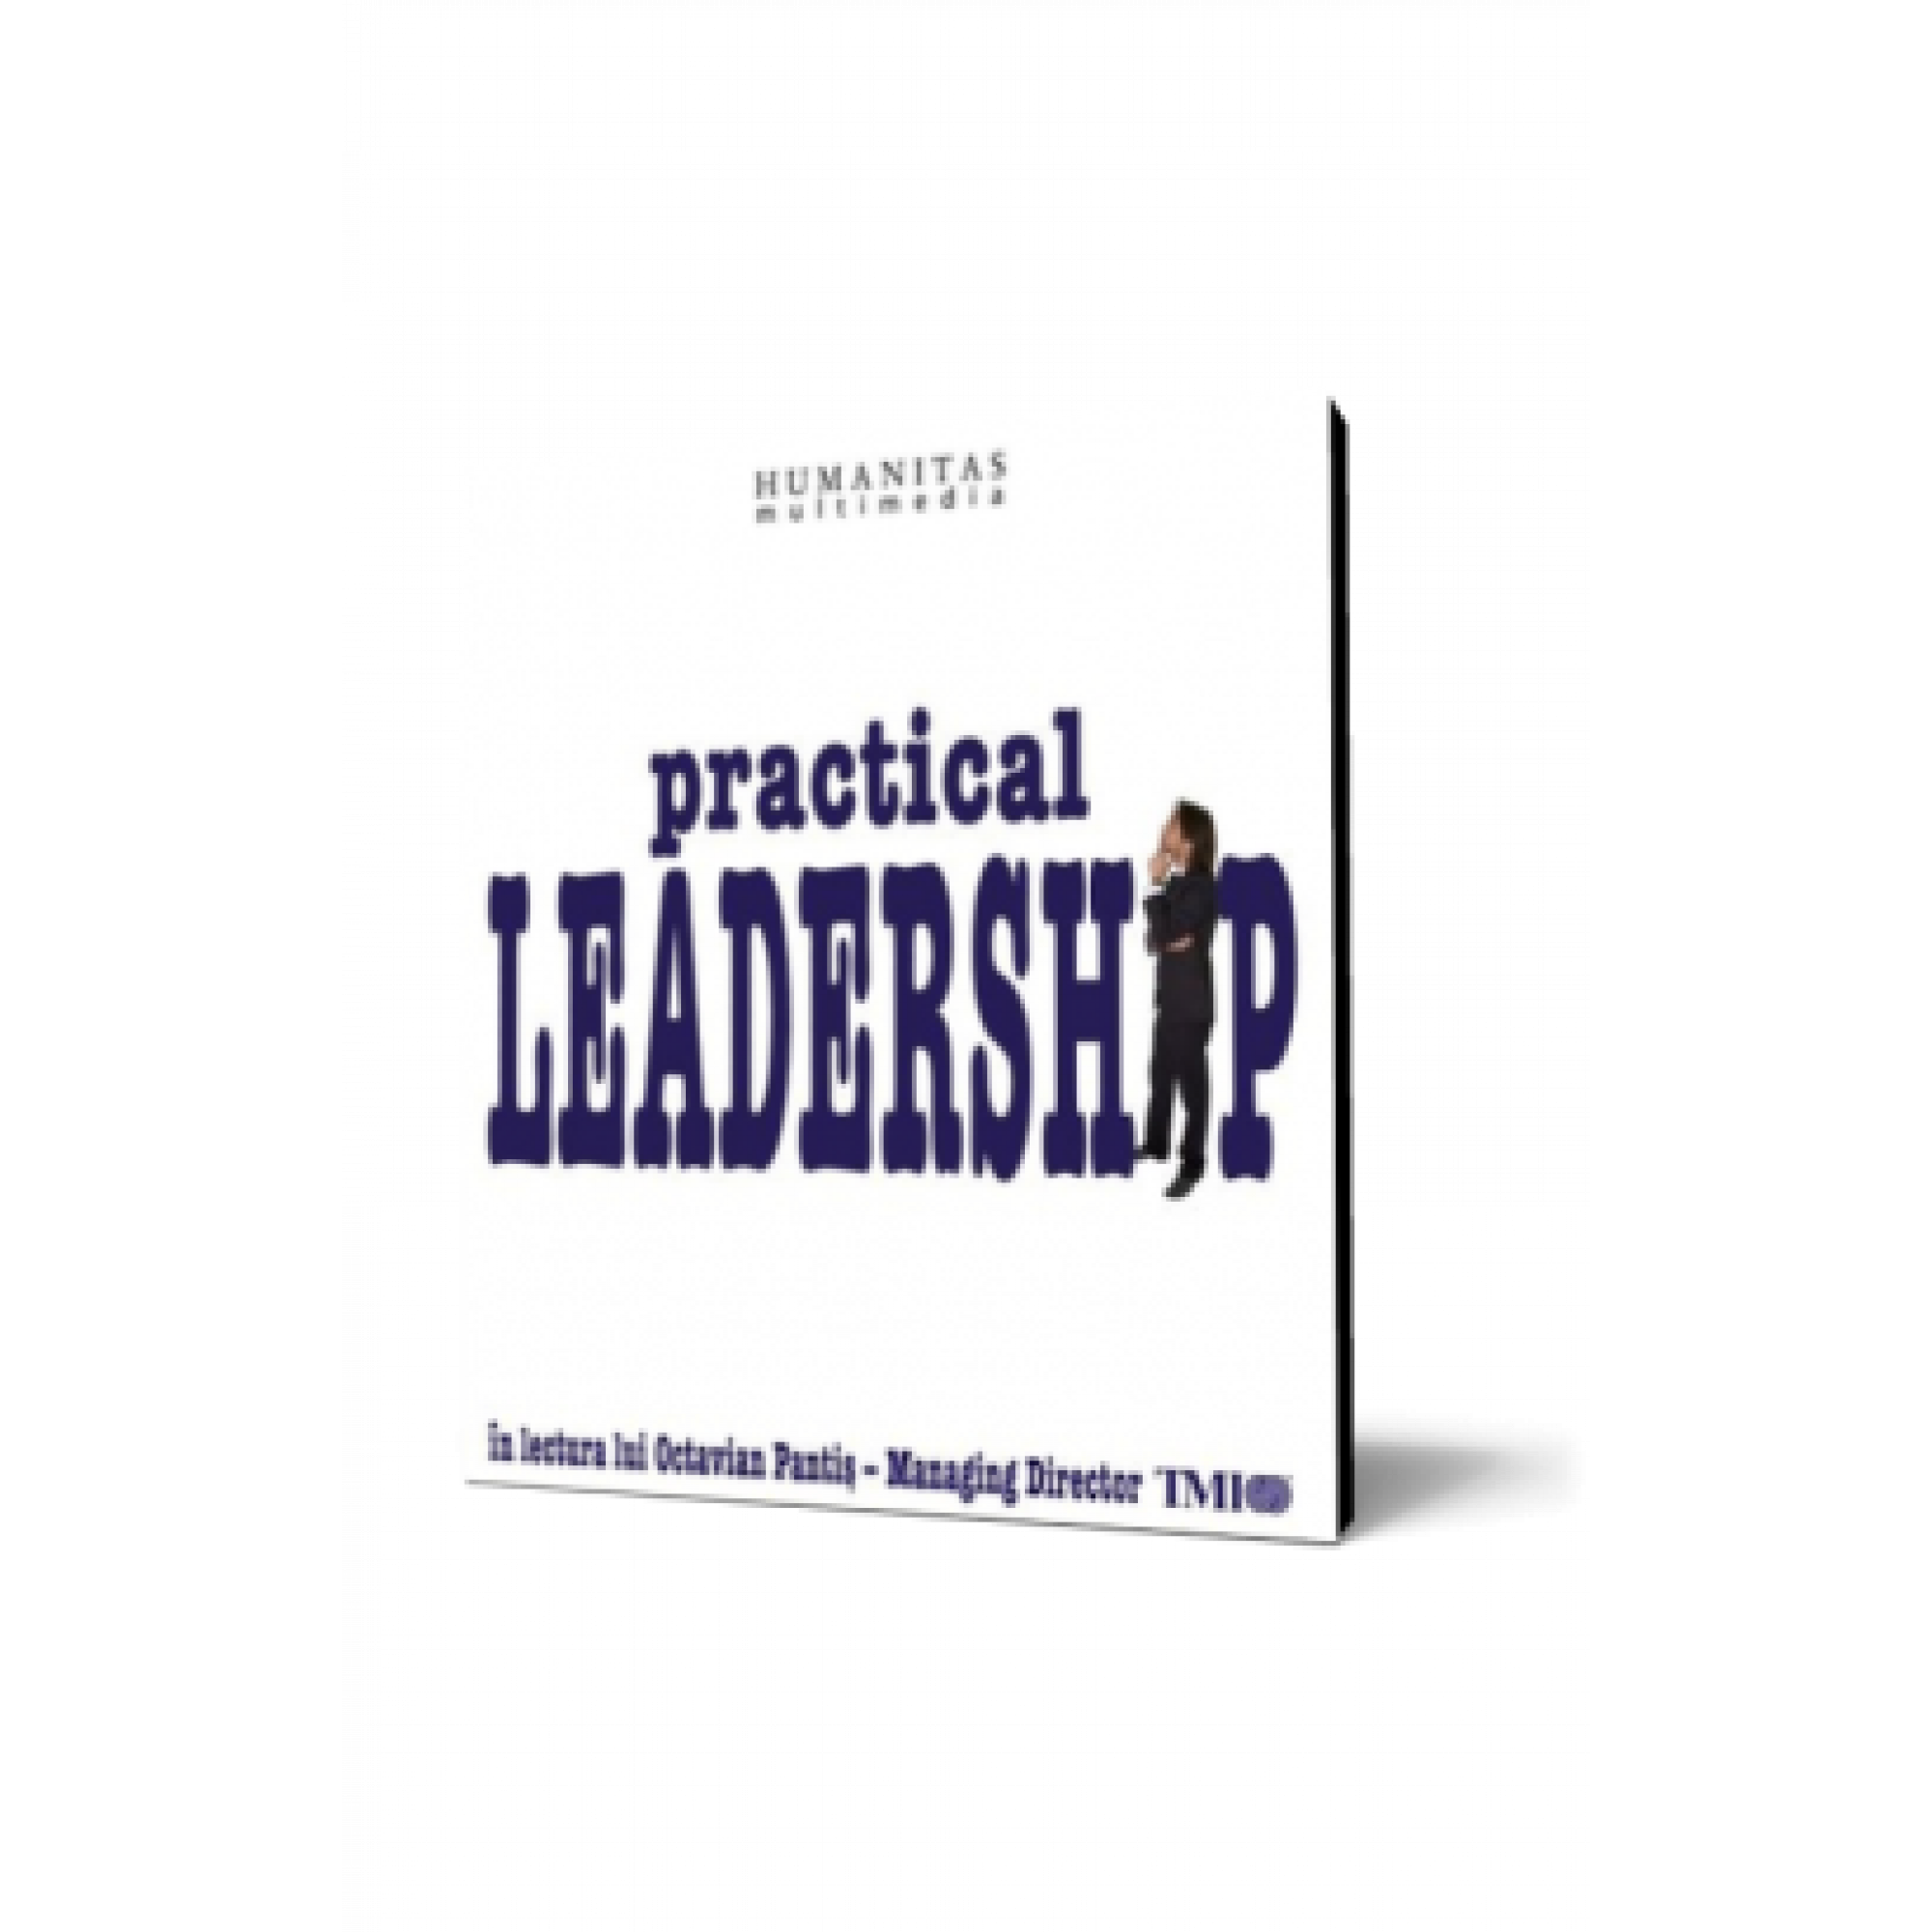 Practical leadership